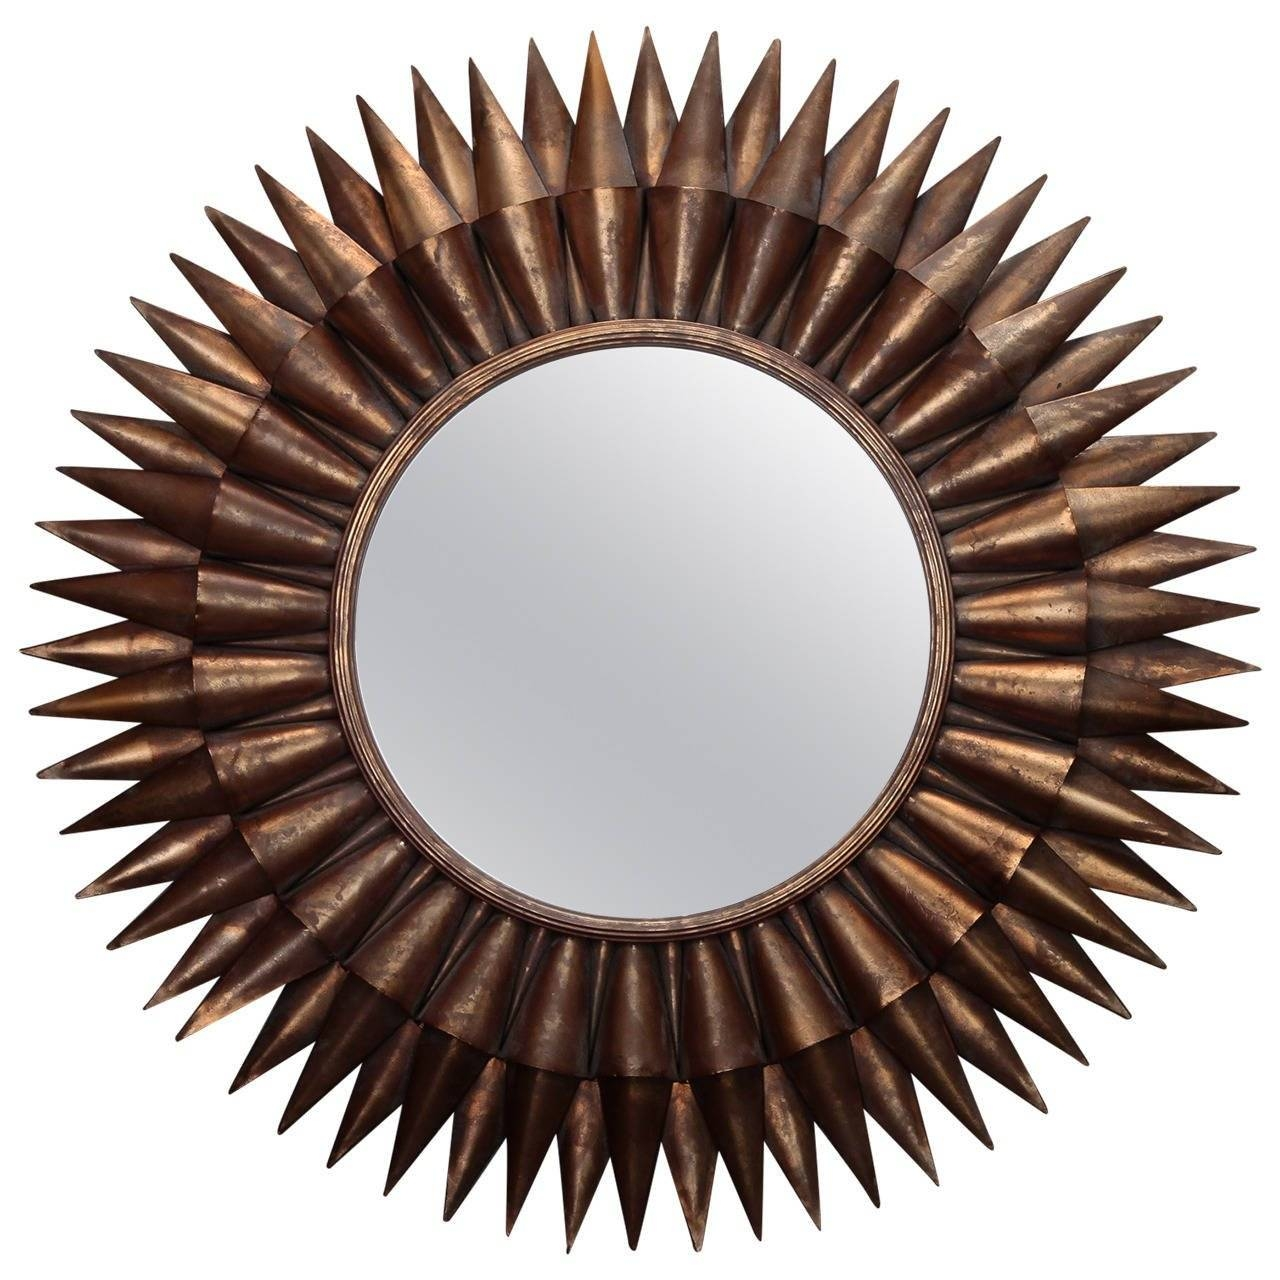 Large Spanish Gilt Sunburst Mirror For Sale At 1Stdibs with regard to Large Sunburst Mirrors (Image 18 of 25)